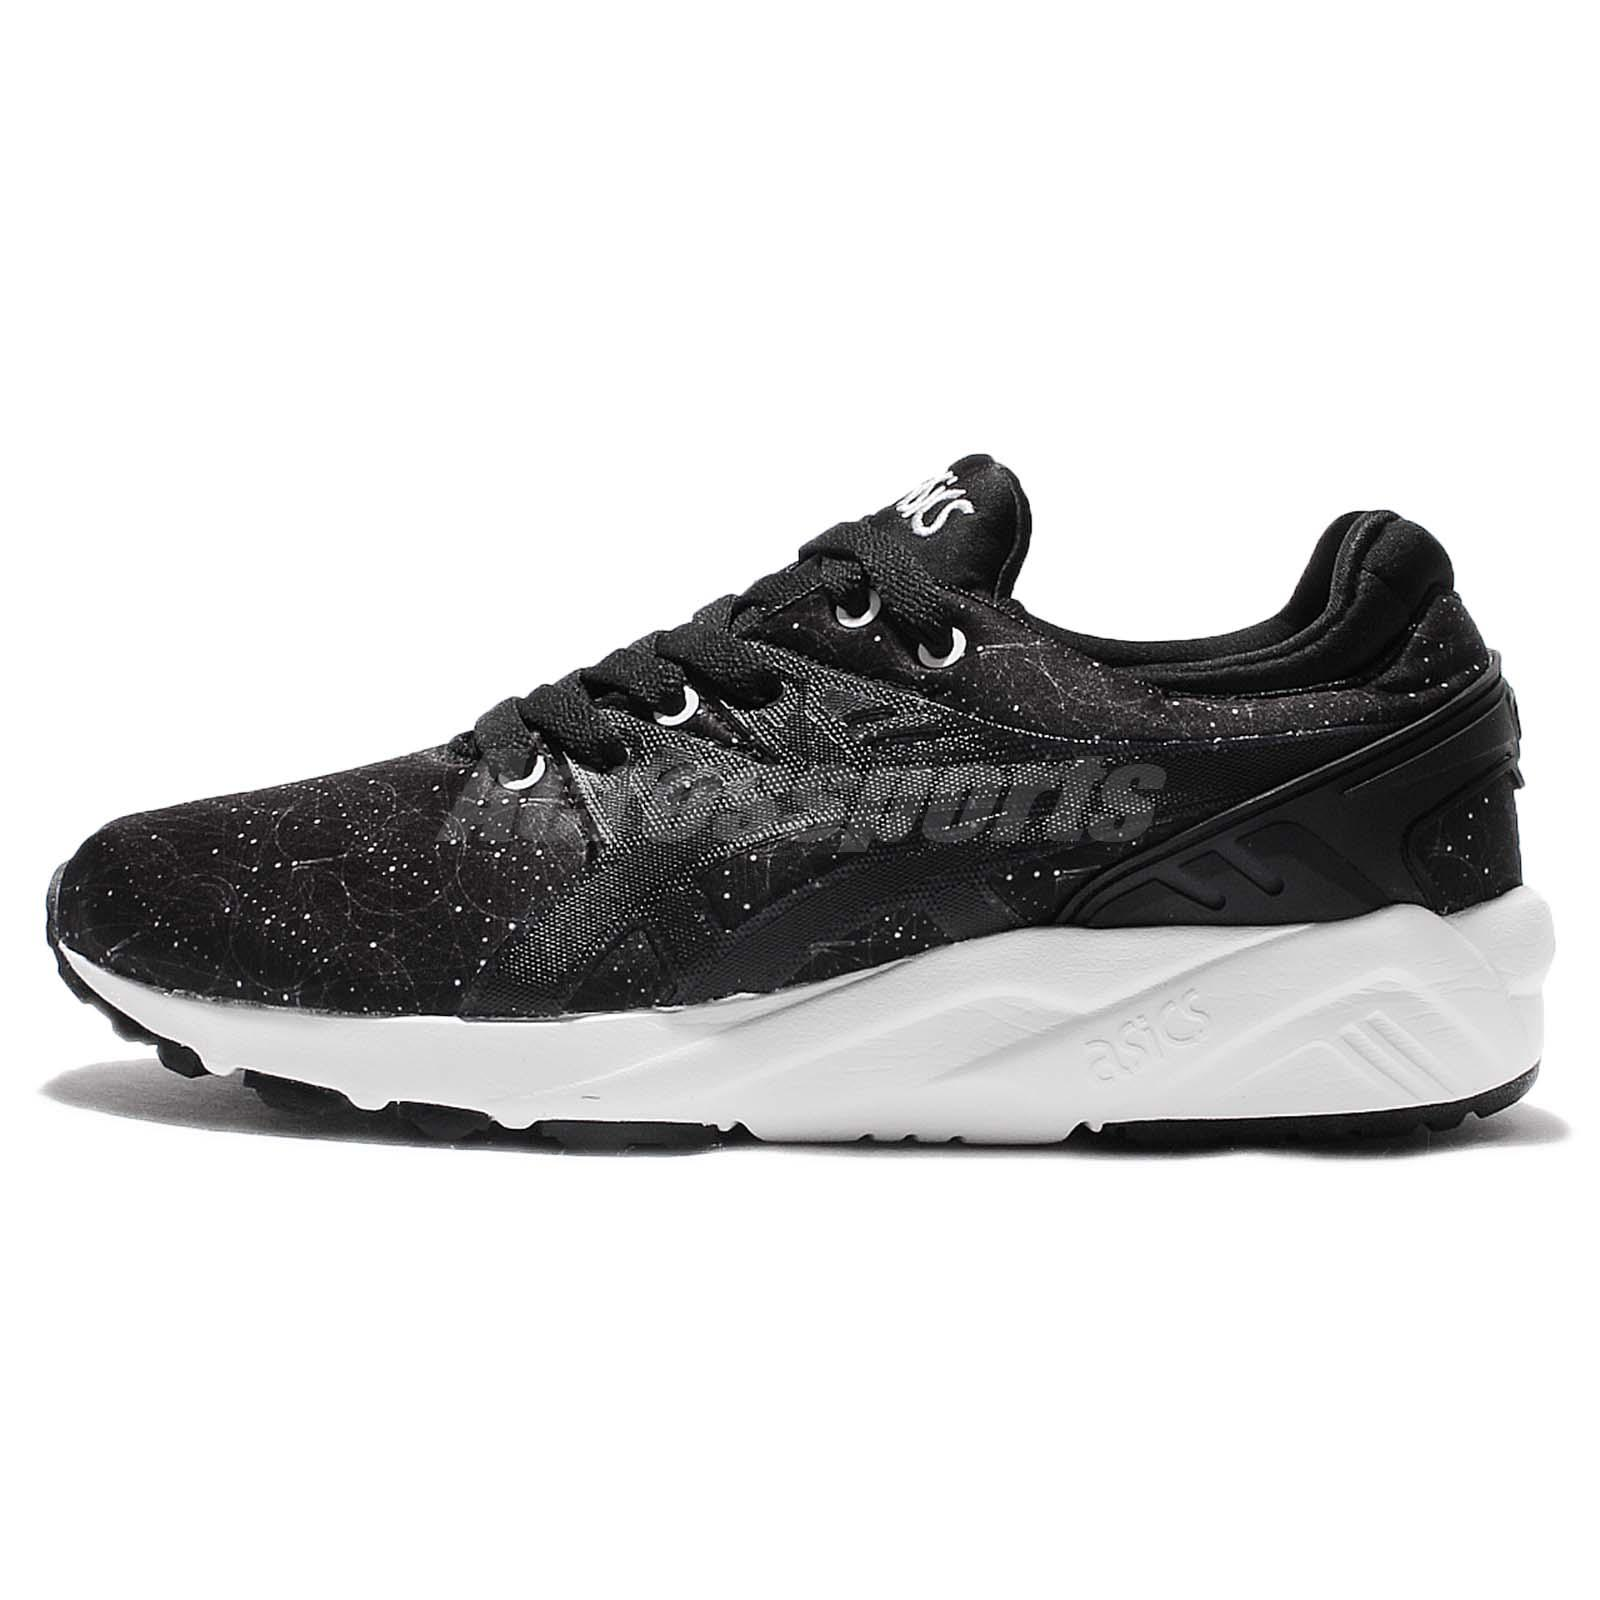 ASICS Tiger Gel-Kayano Trainer Evo Black White Mens Running Shoes HN6B3-9090